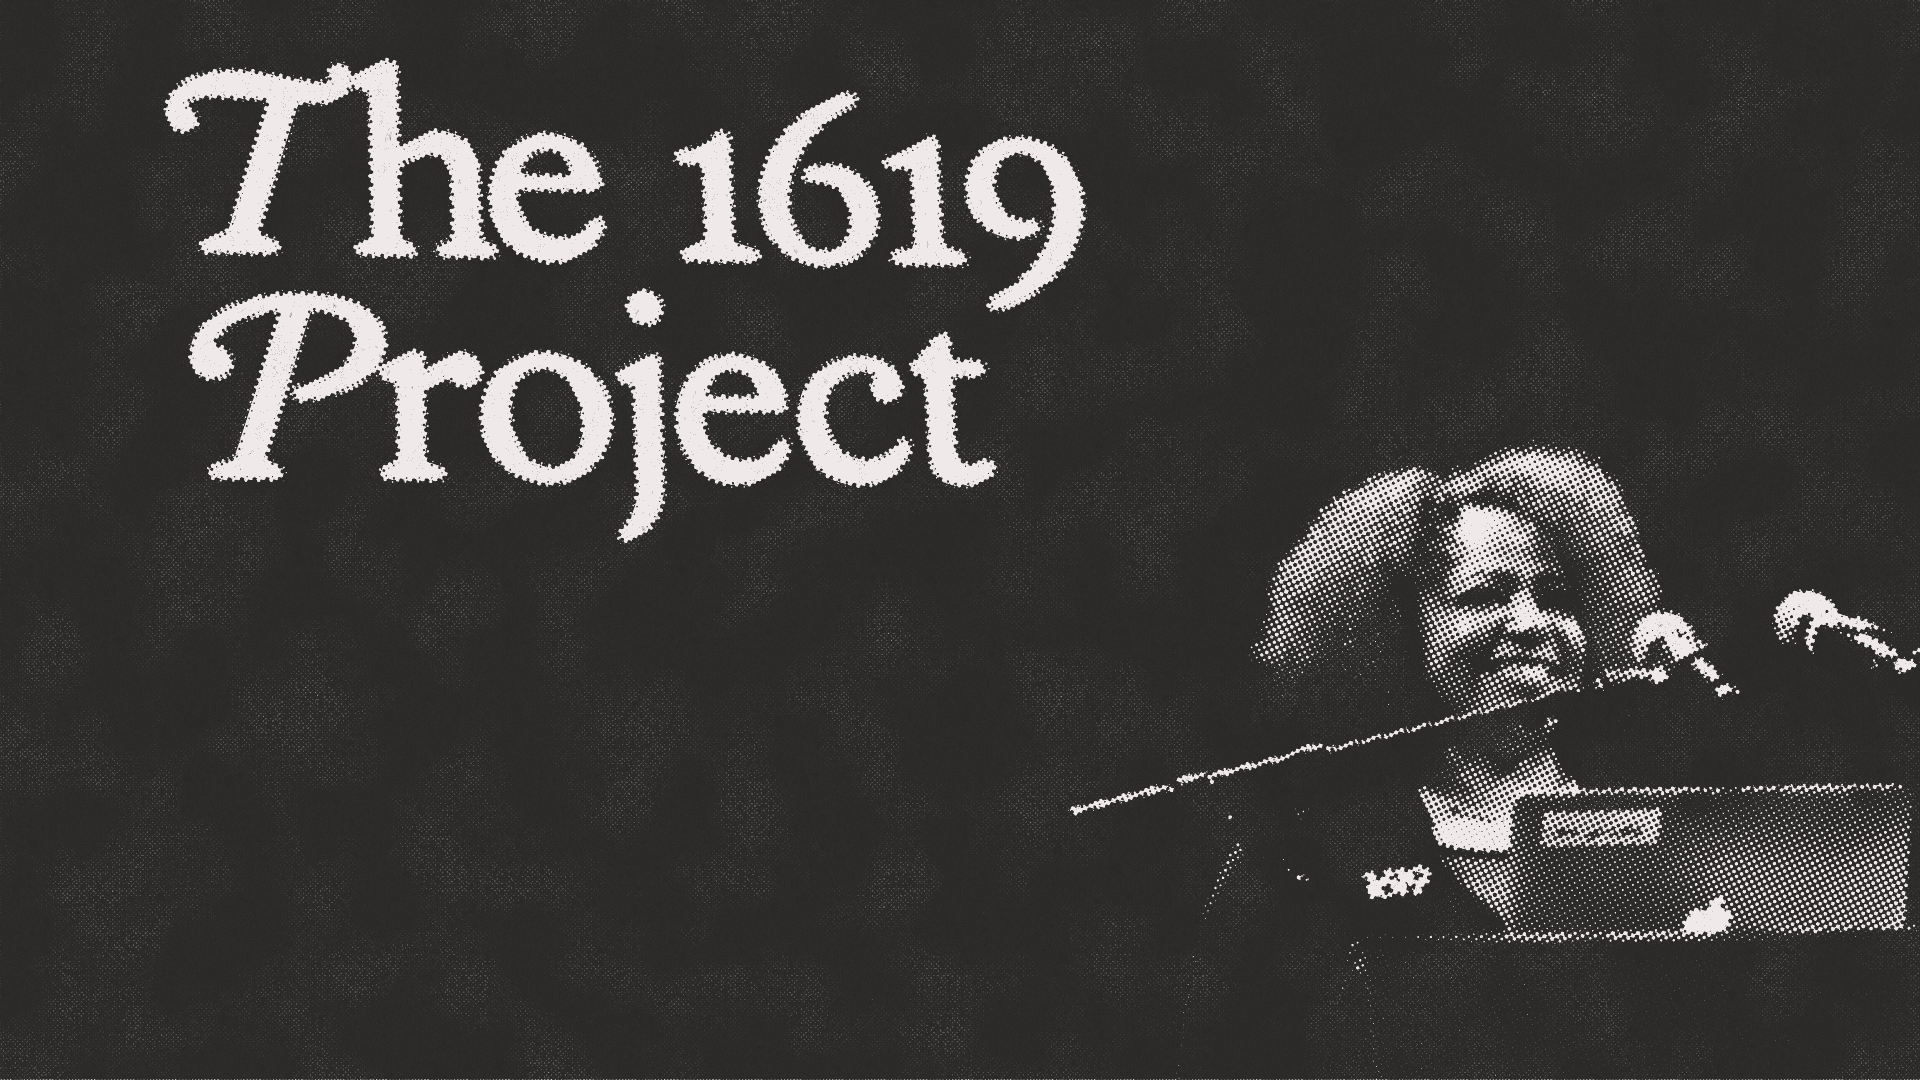 1619 Project.